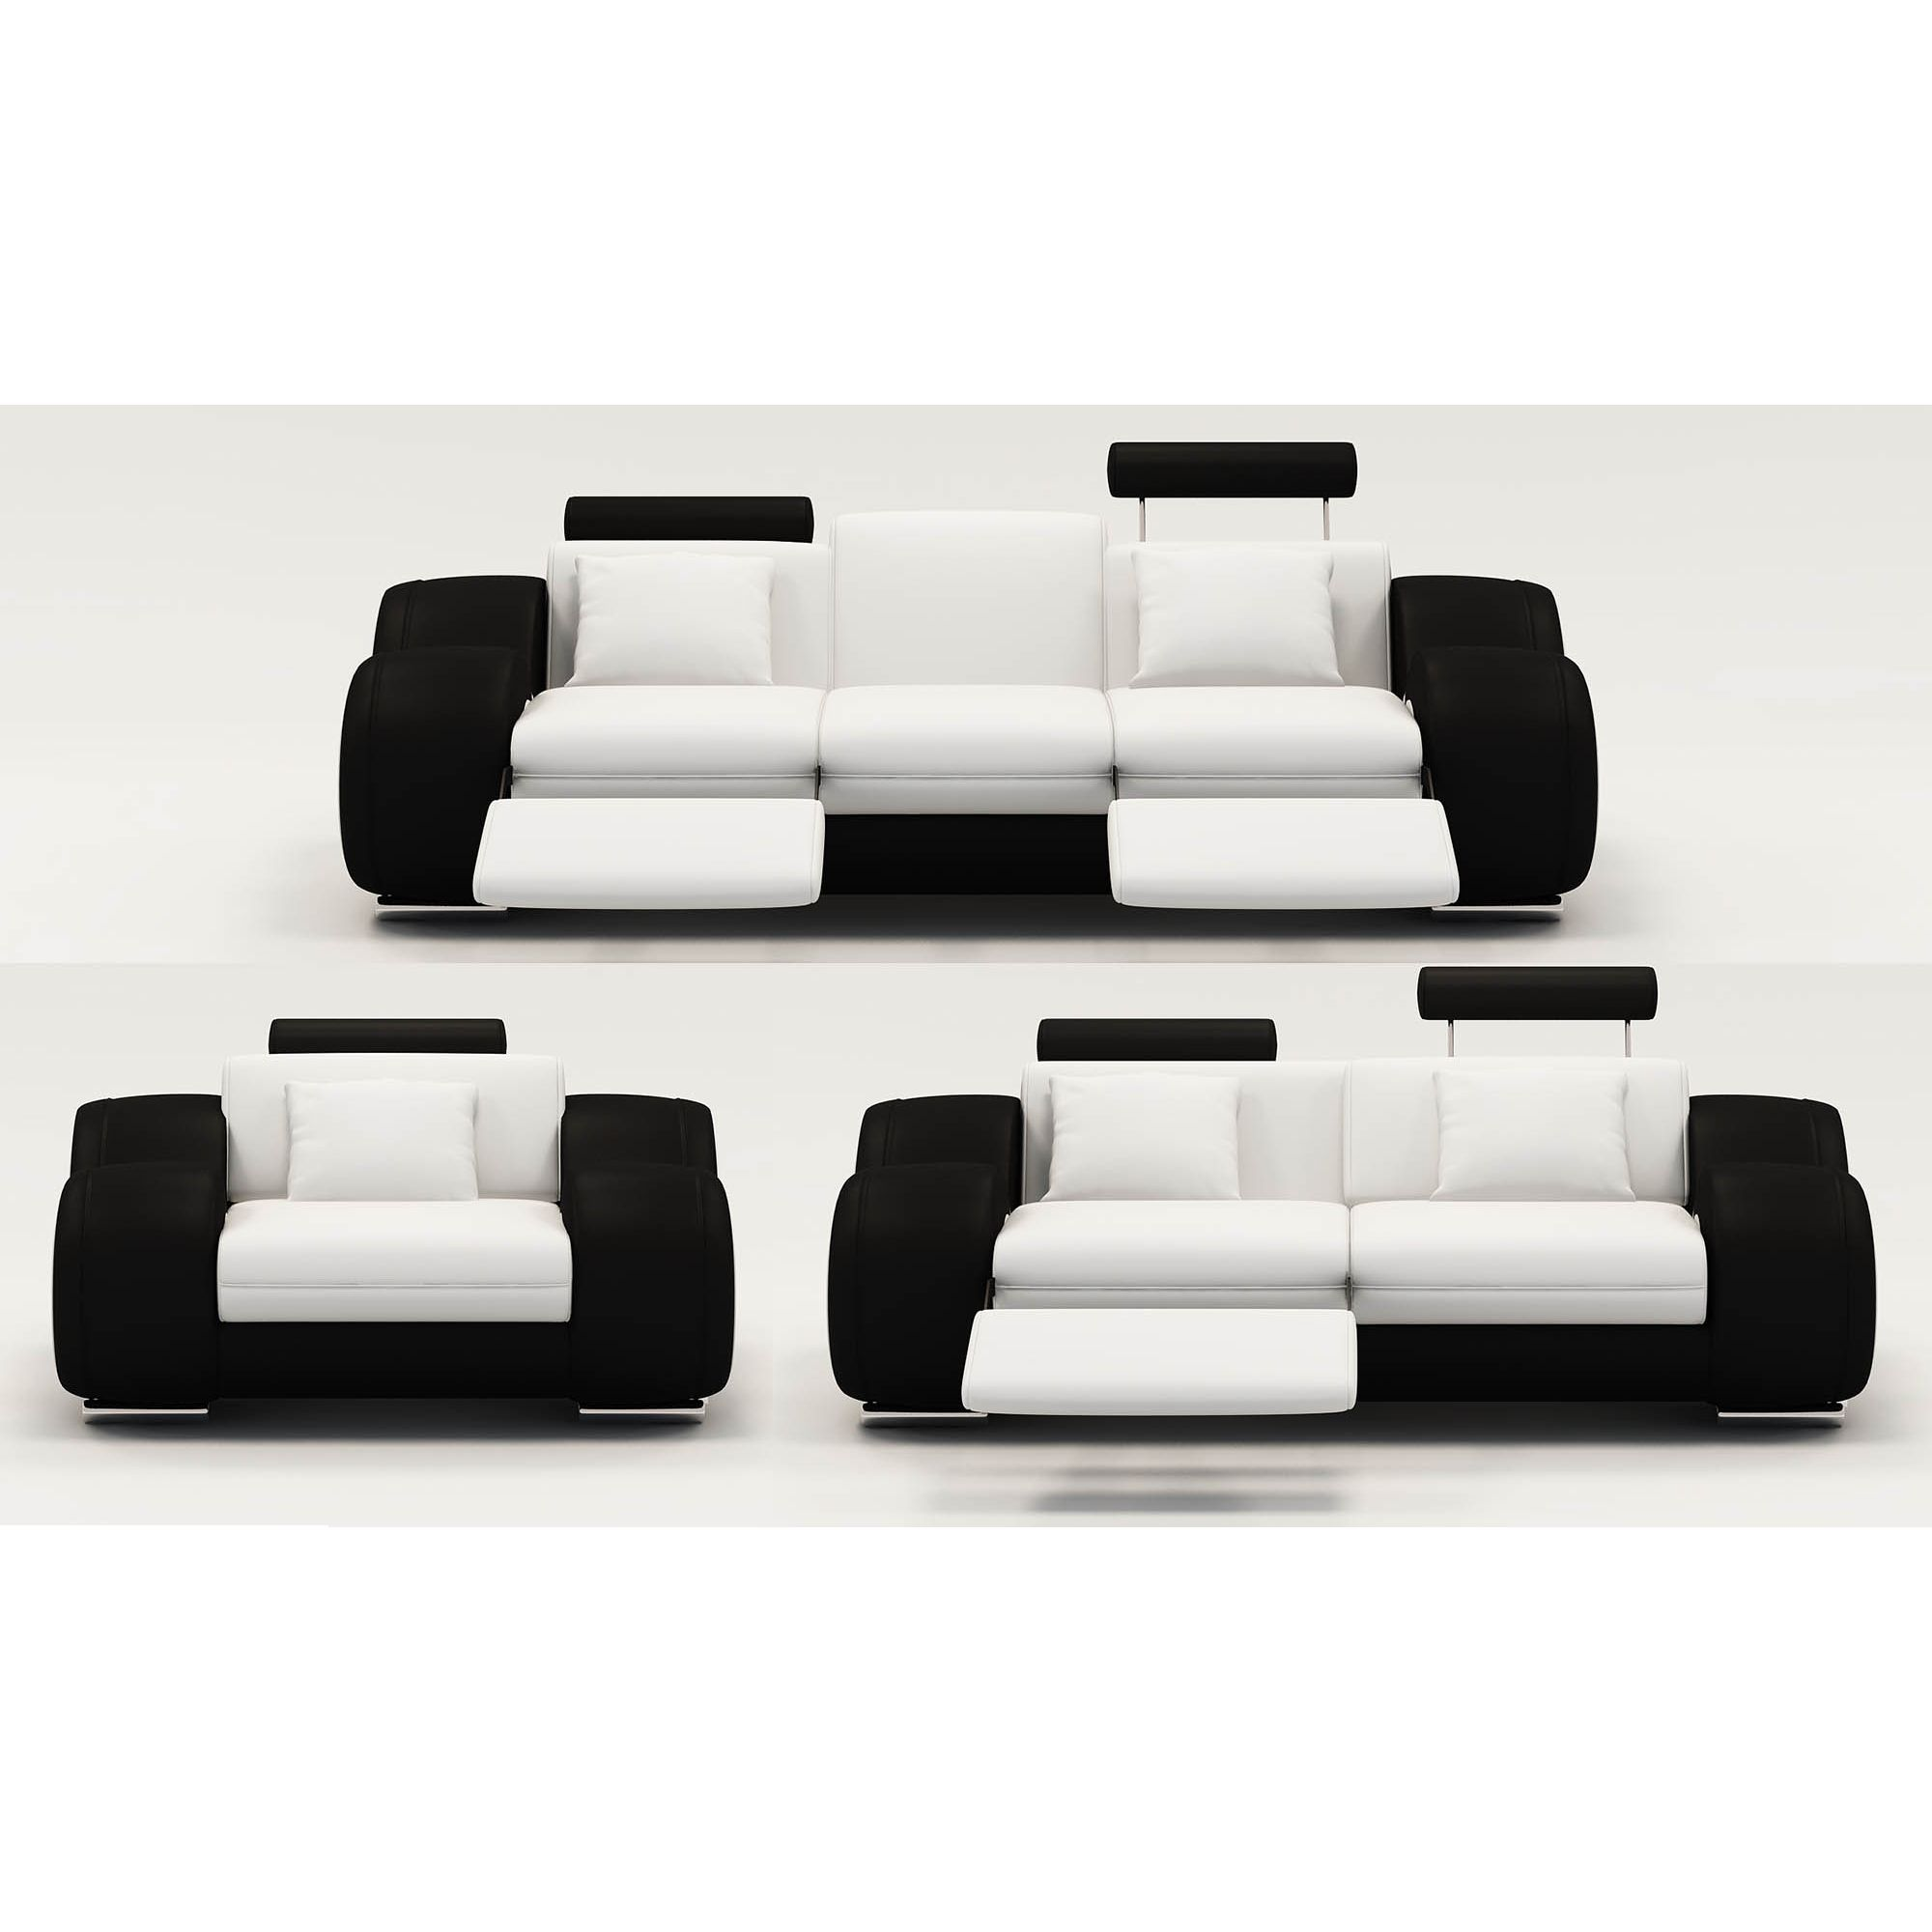 Deco in paris ensemble canape relax design 3 2 places blanc et noir oslo os - Canape 2 places blanc ...